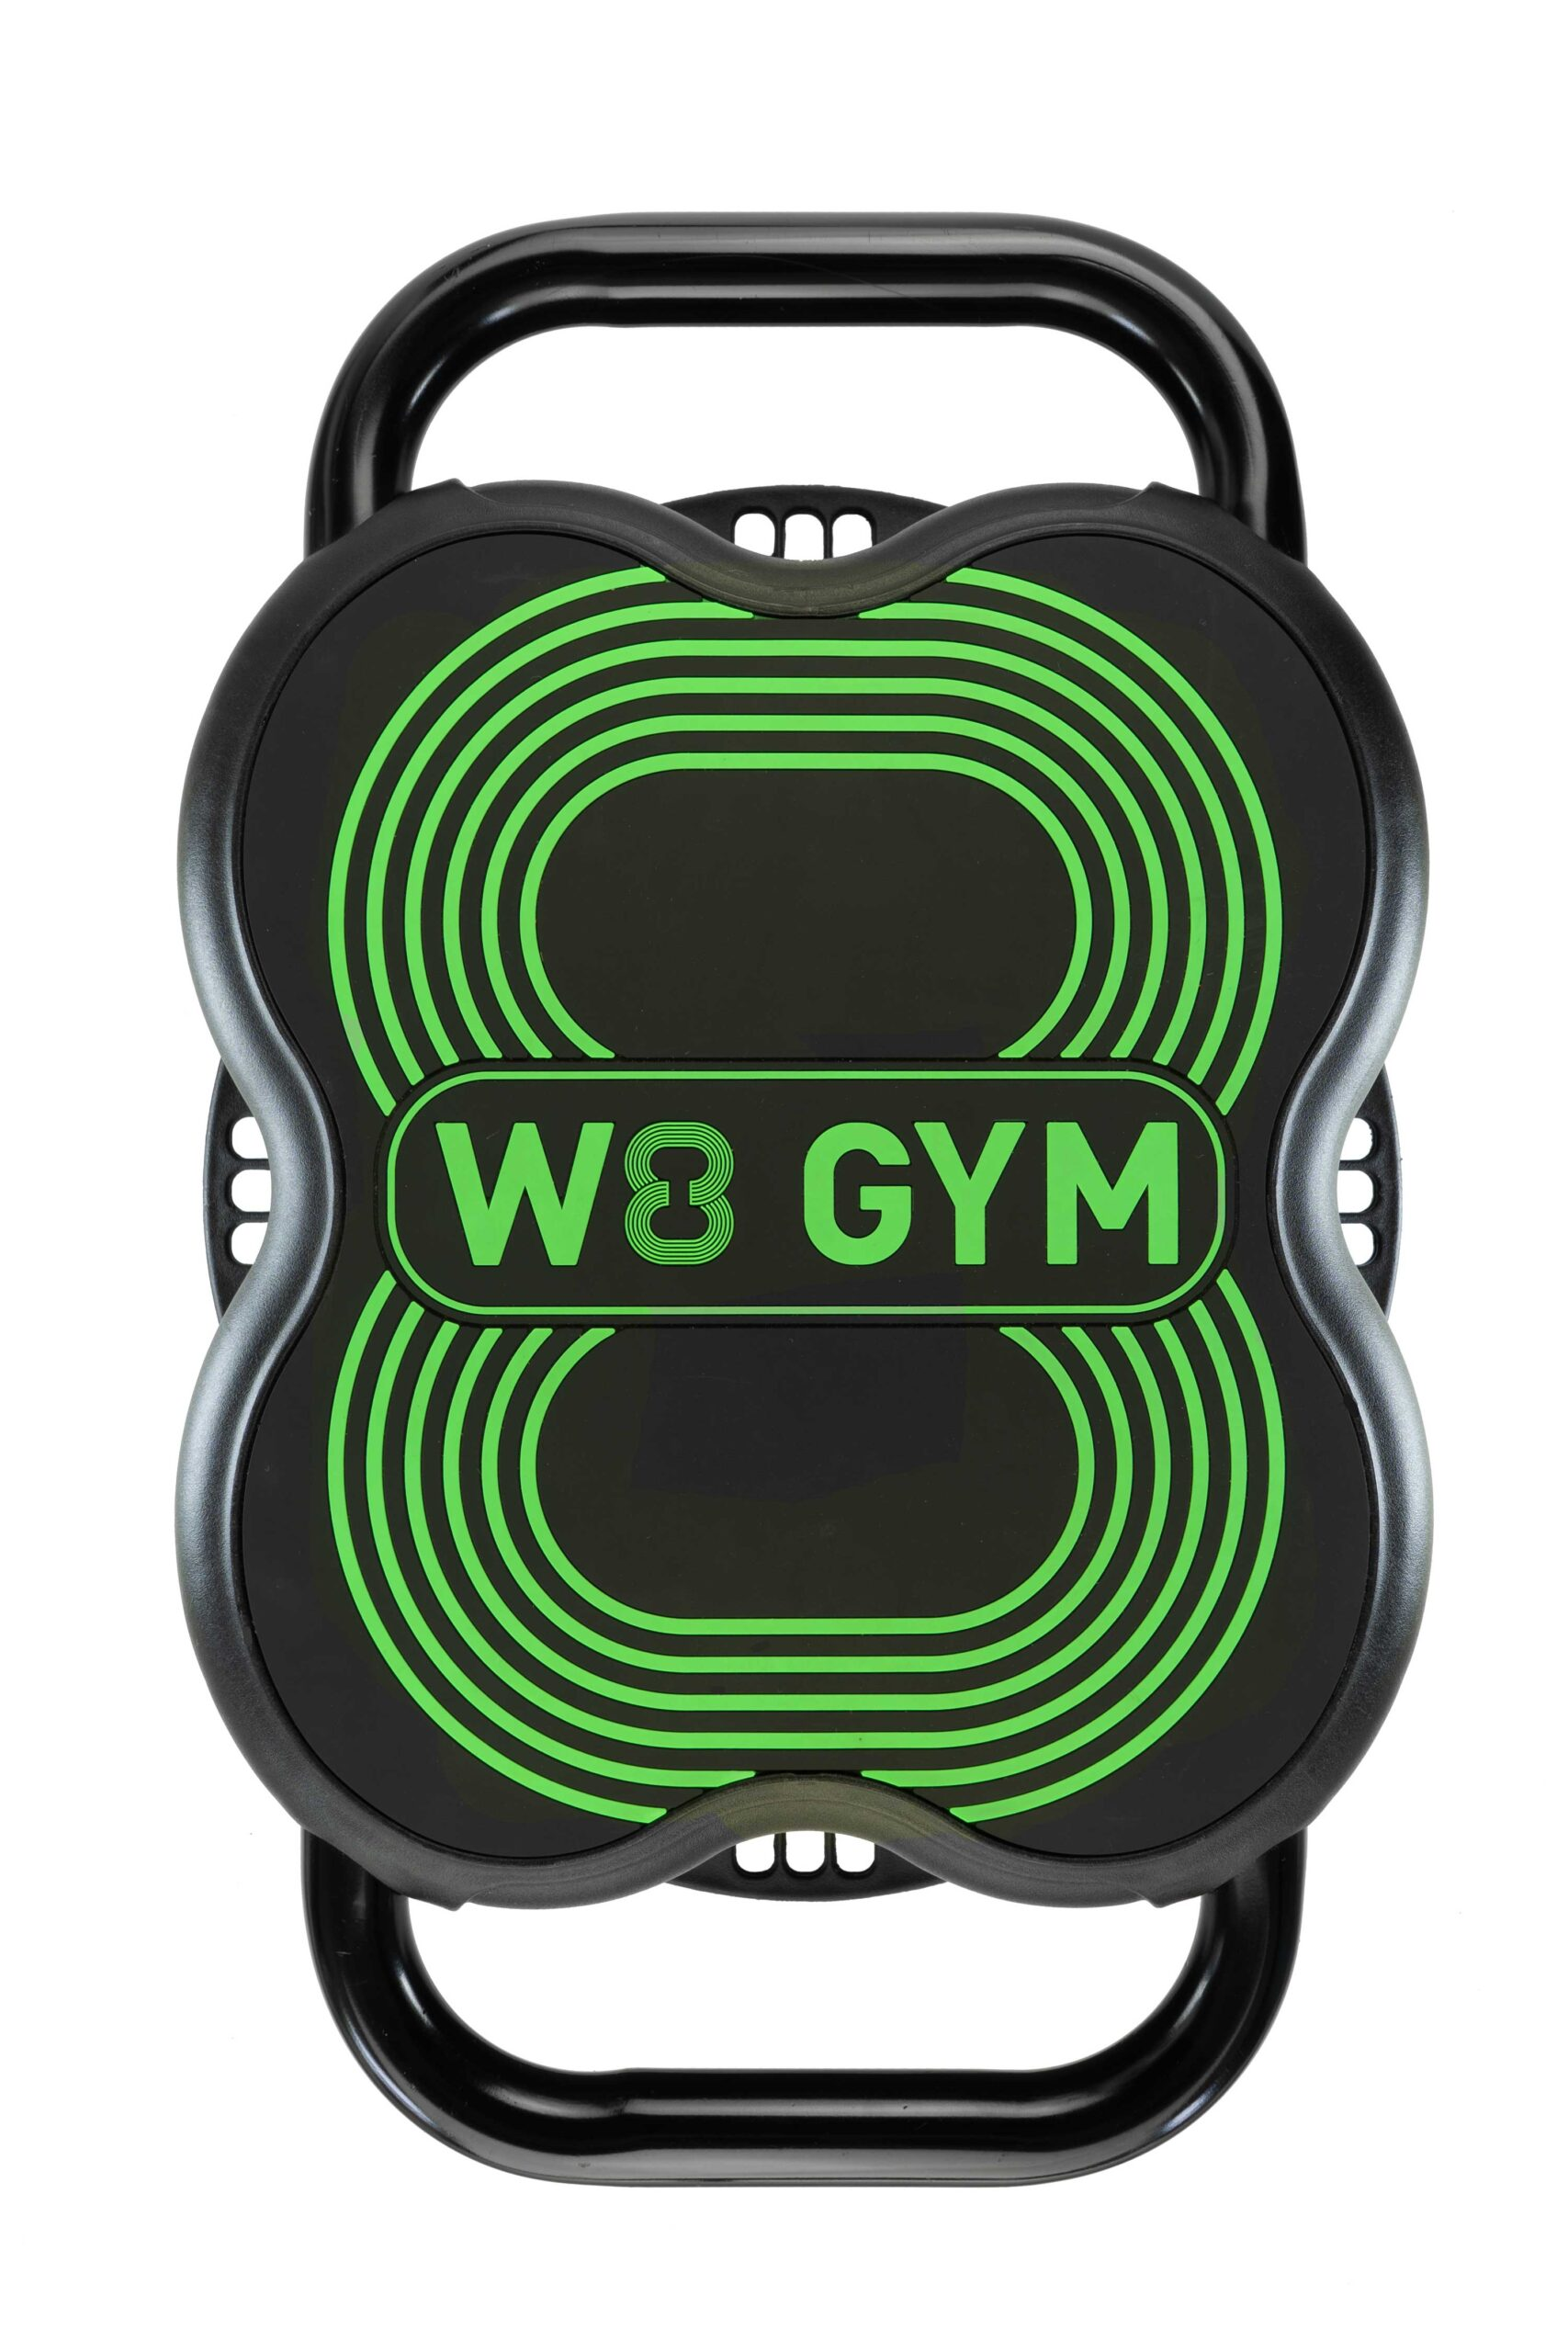 W8 GYM Dynamic Green